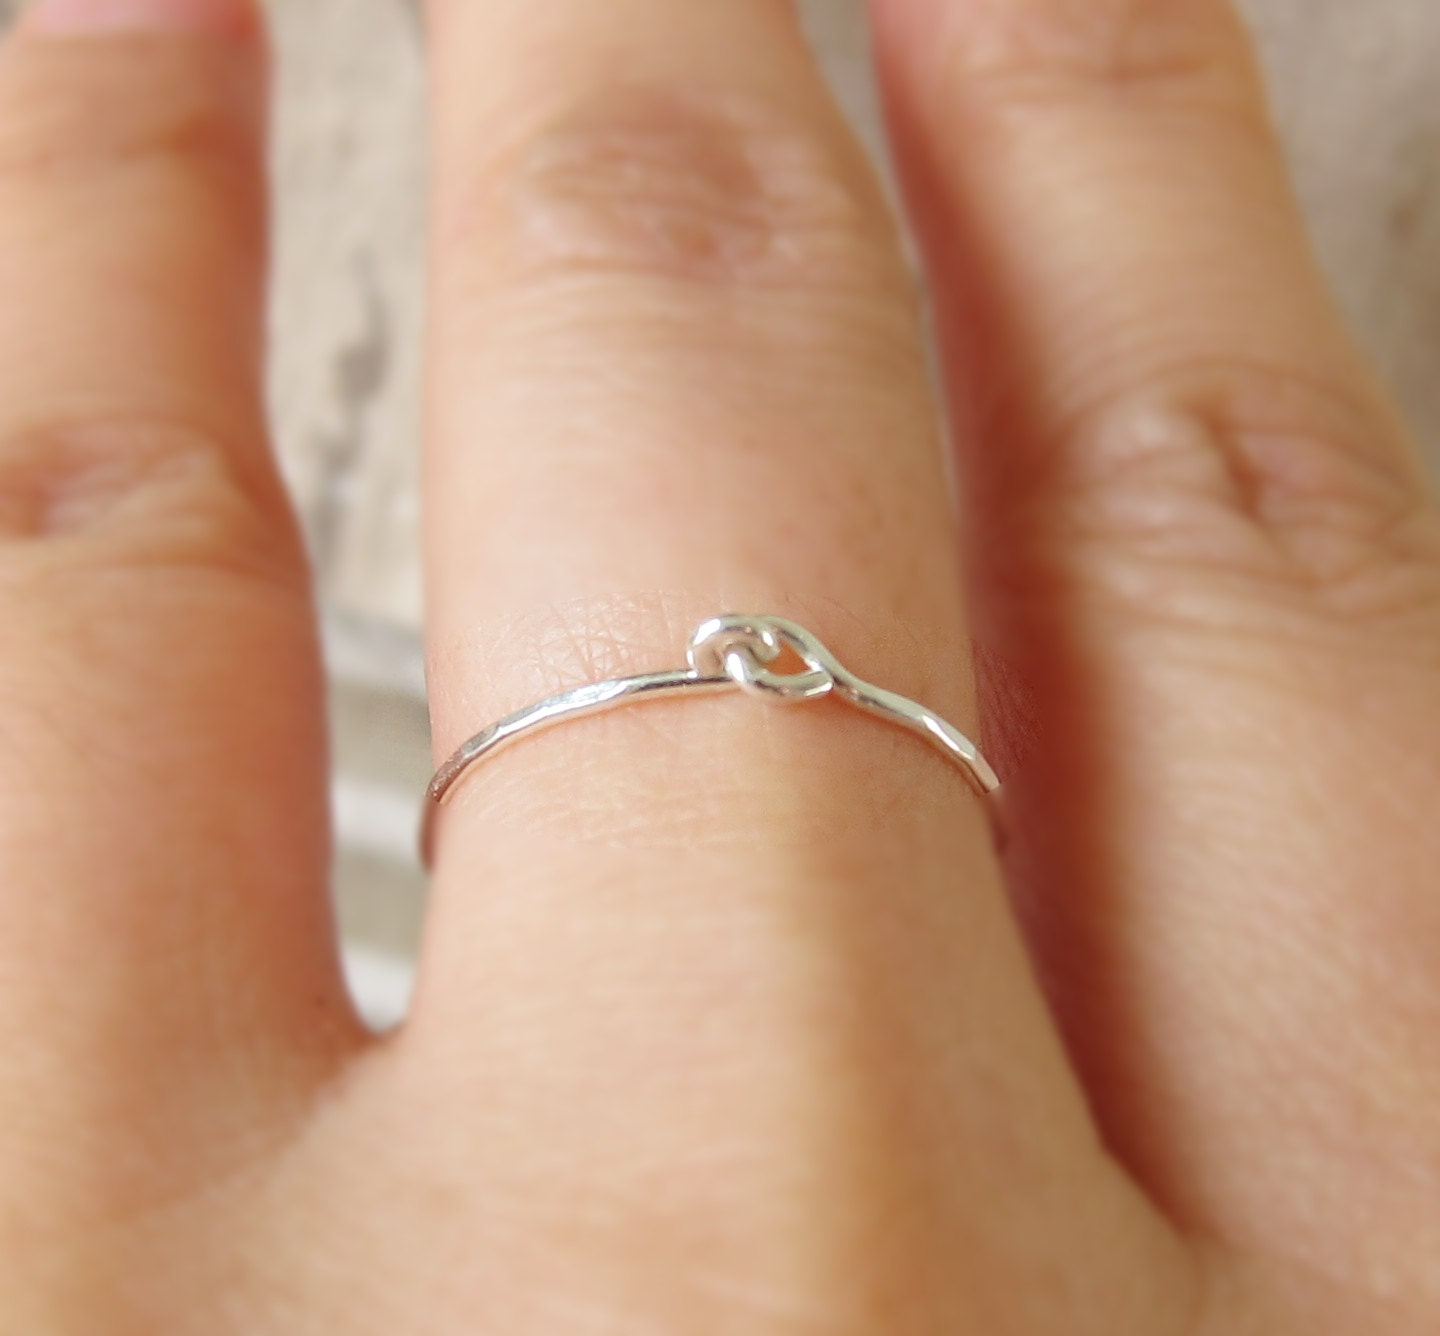 Holding Hands Ring Hand Hammered Love Ring-Holding Hands